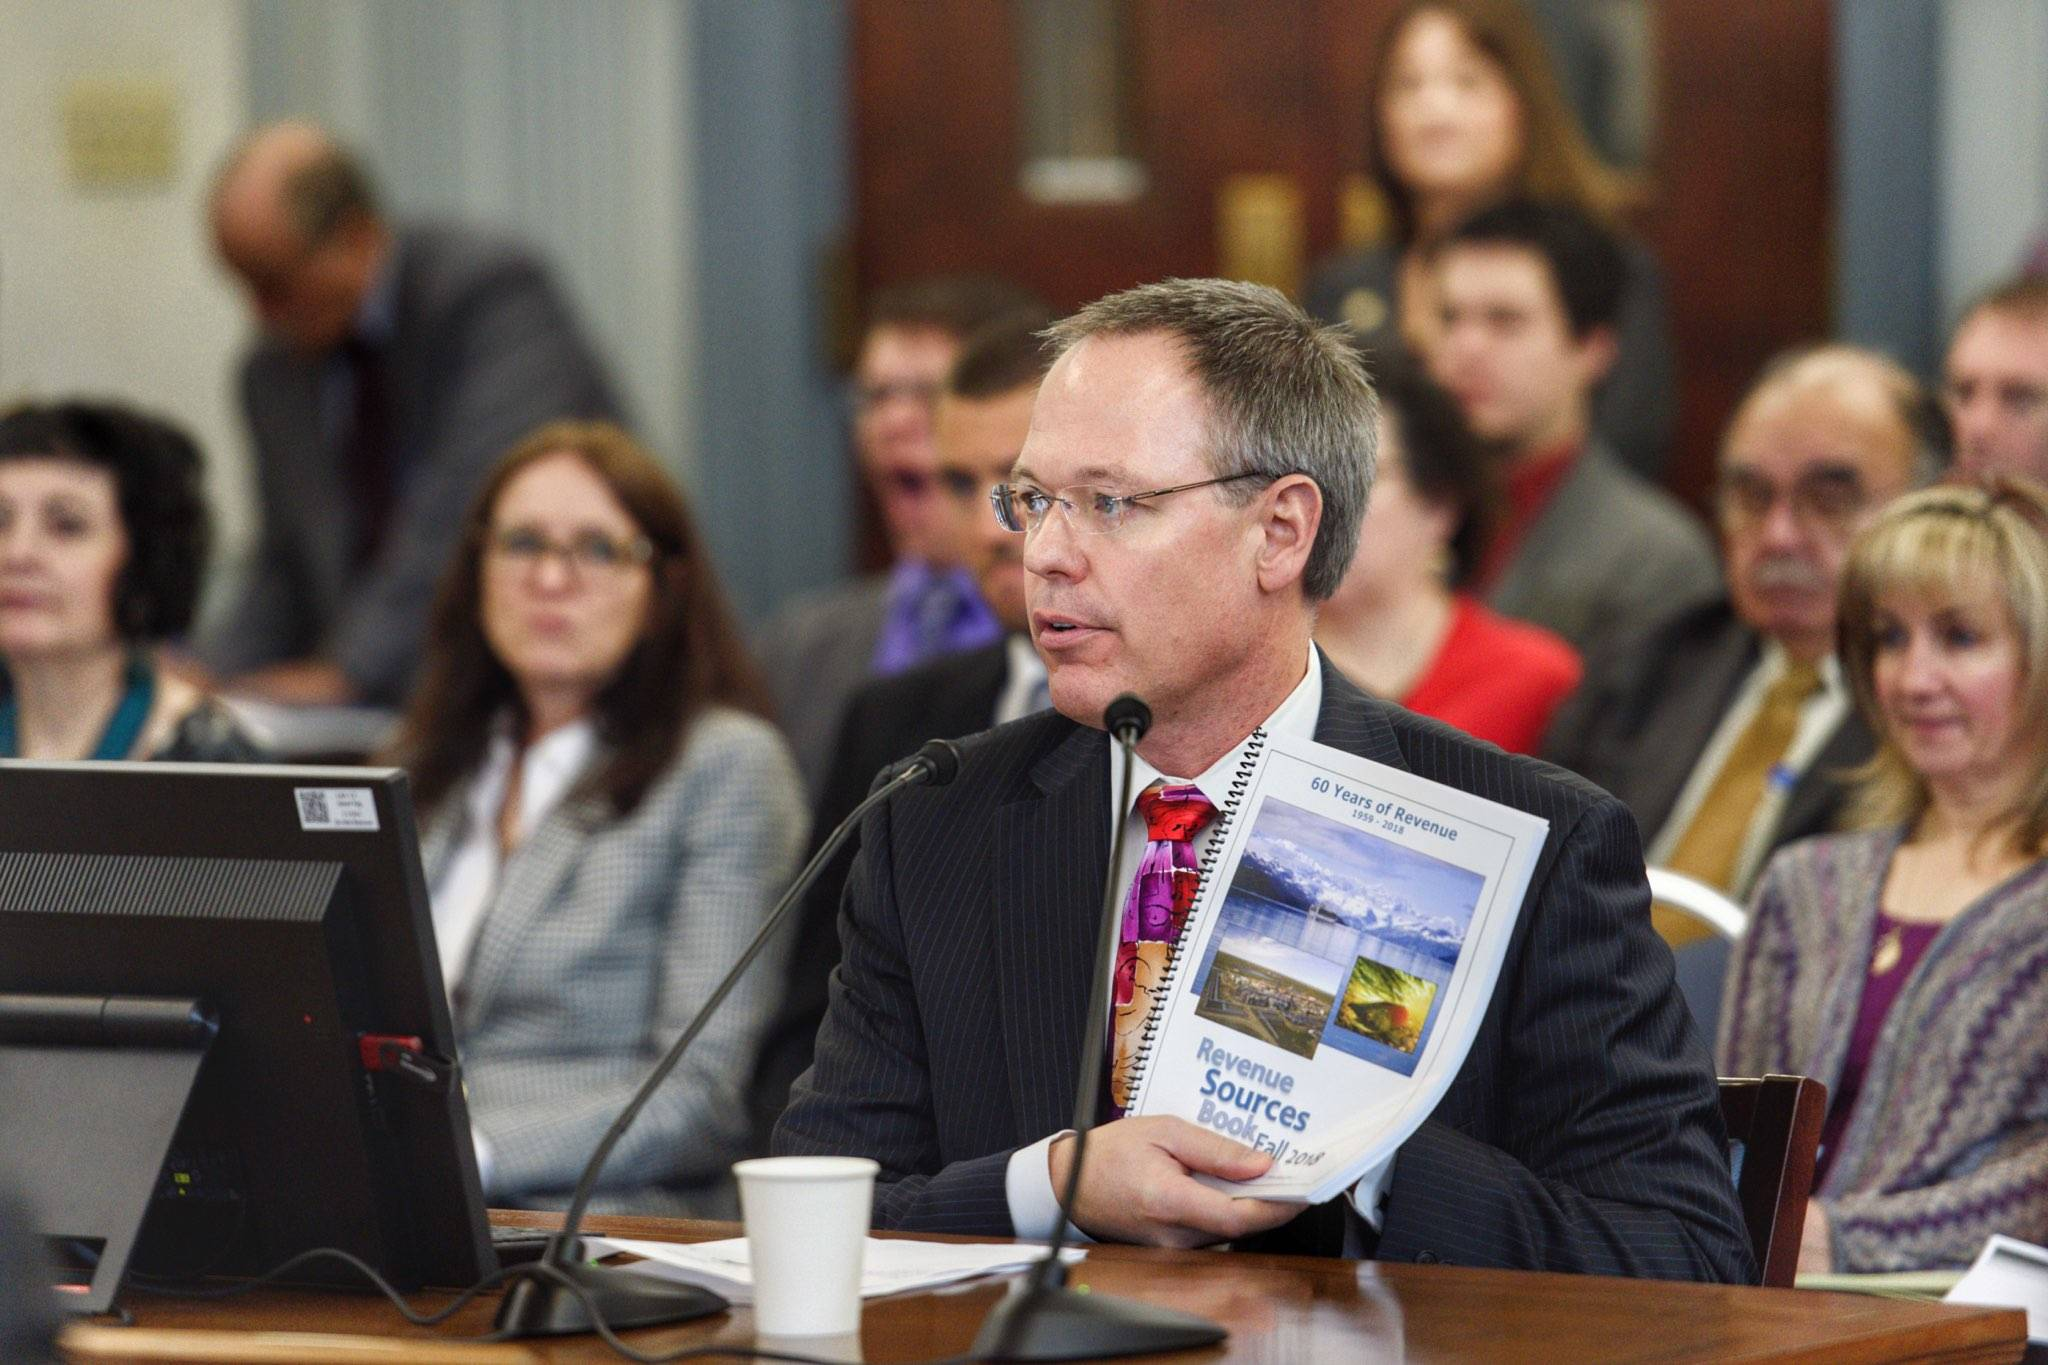 Commissioner Designee Bruce Tangeman presents the state's revenue forecast to the Senate Finance Committee at the Capitol on Wednesday, Jan. 16, 2019. (Michael Penn | Juneau Empire)